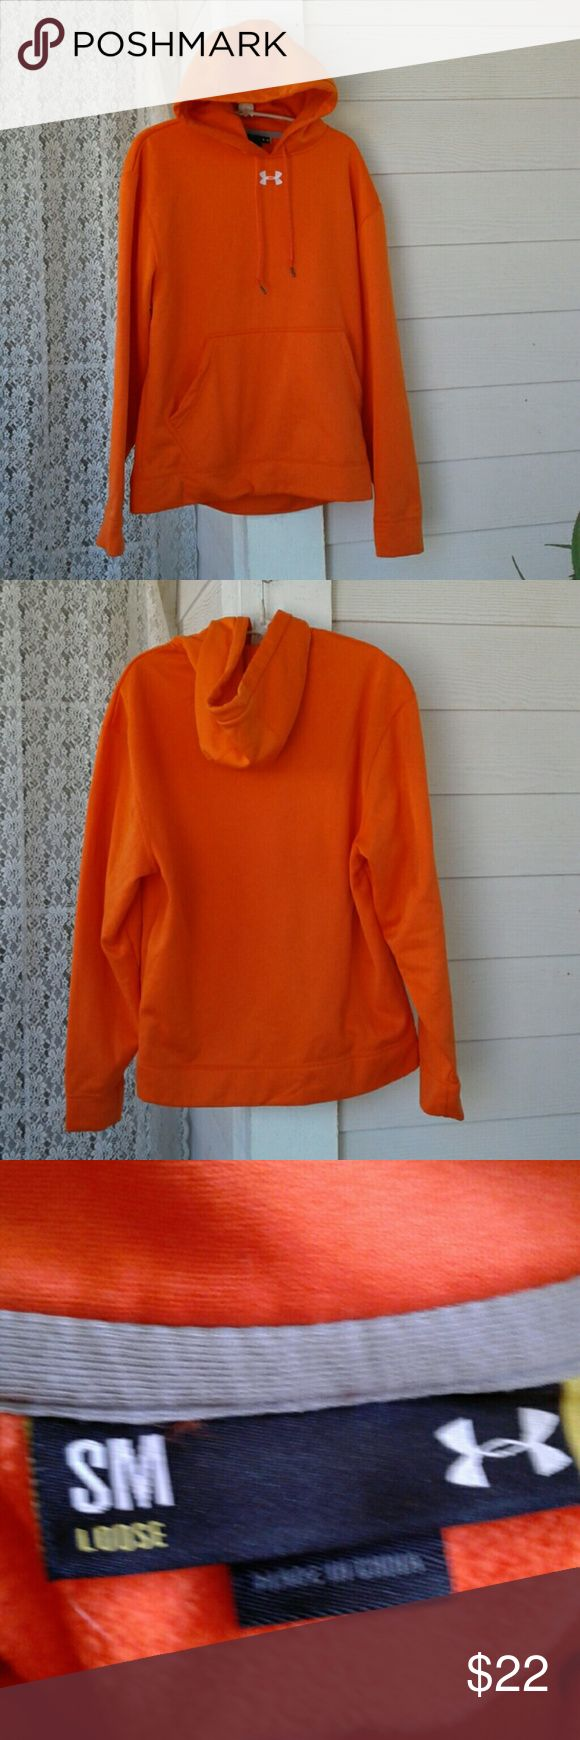 "UNDER ARMOUR WOMEN'S ORANGE HOODIE SIZE SM (small medium),DRAWSTRING HOODIE PULL, FLEECE LINING,  FRONT KANGAROO POCKET,  WHITE EMBROIDERED LOGO, 25"" LONG, 24"" SLEEVES, 23"" ARM PIT TO ARM PIT, ♡♡♡♡GREAT PRE-LOVED CONDITION♡♡♡ UNDER ARMOUR Tops Sweatshirts & Hoodies"